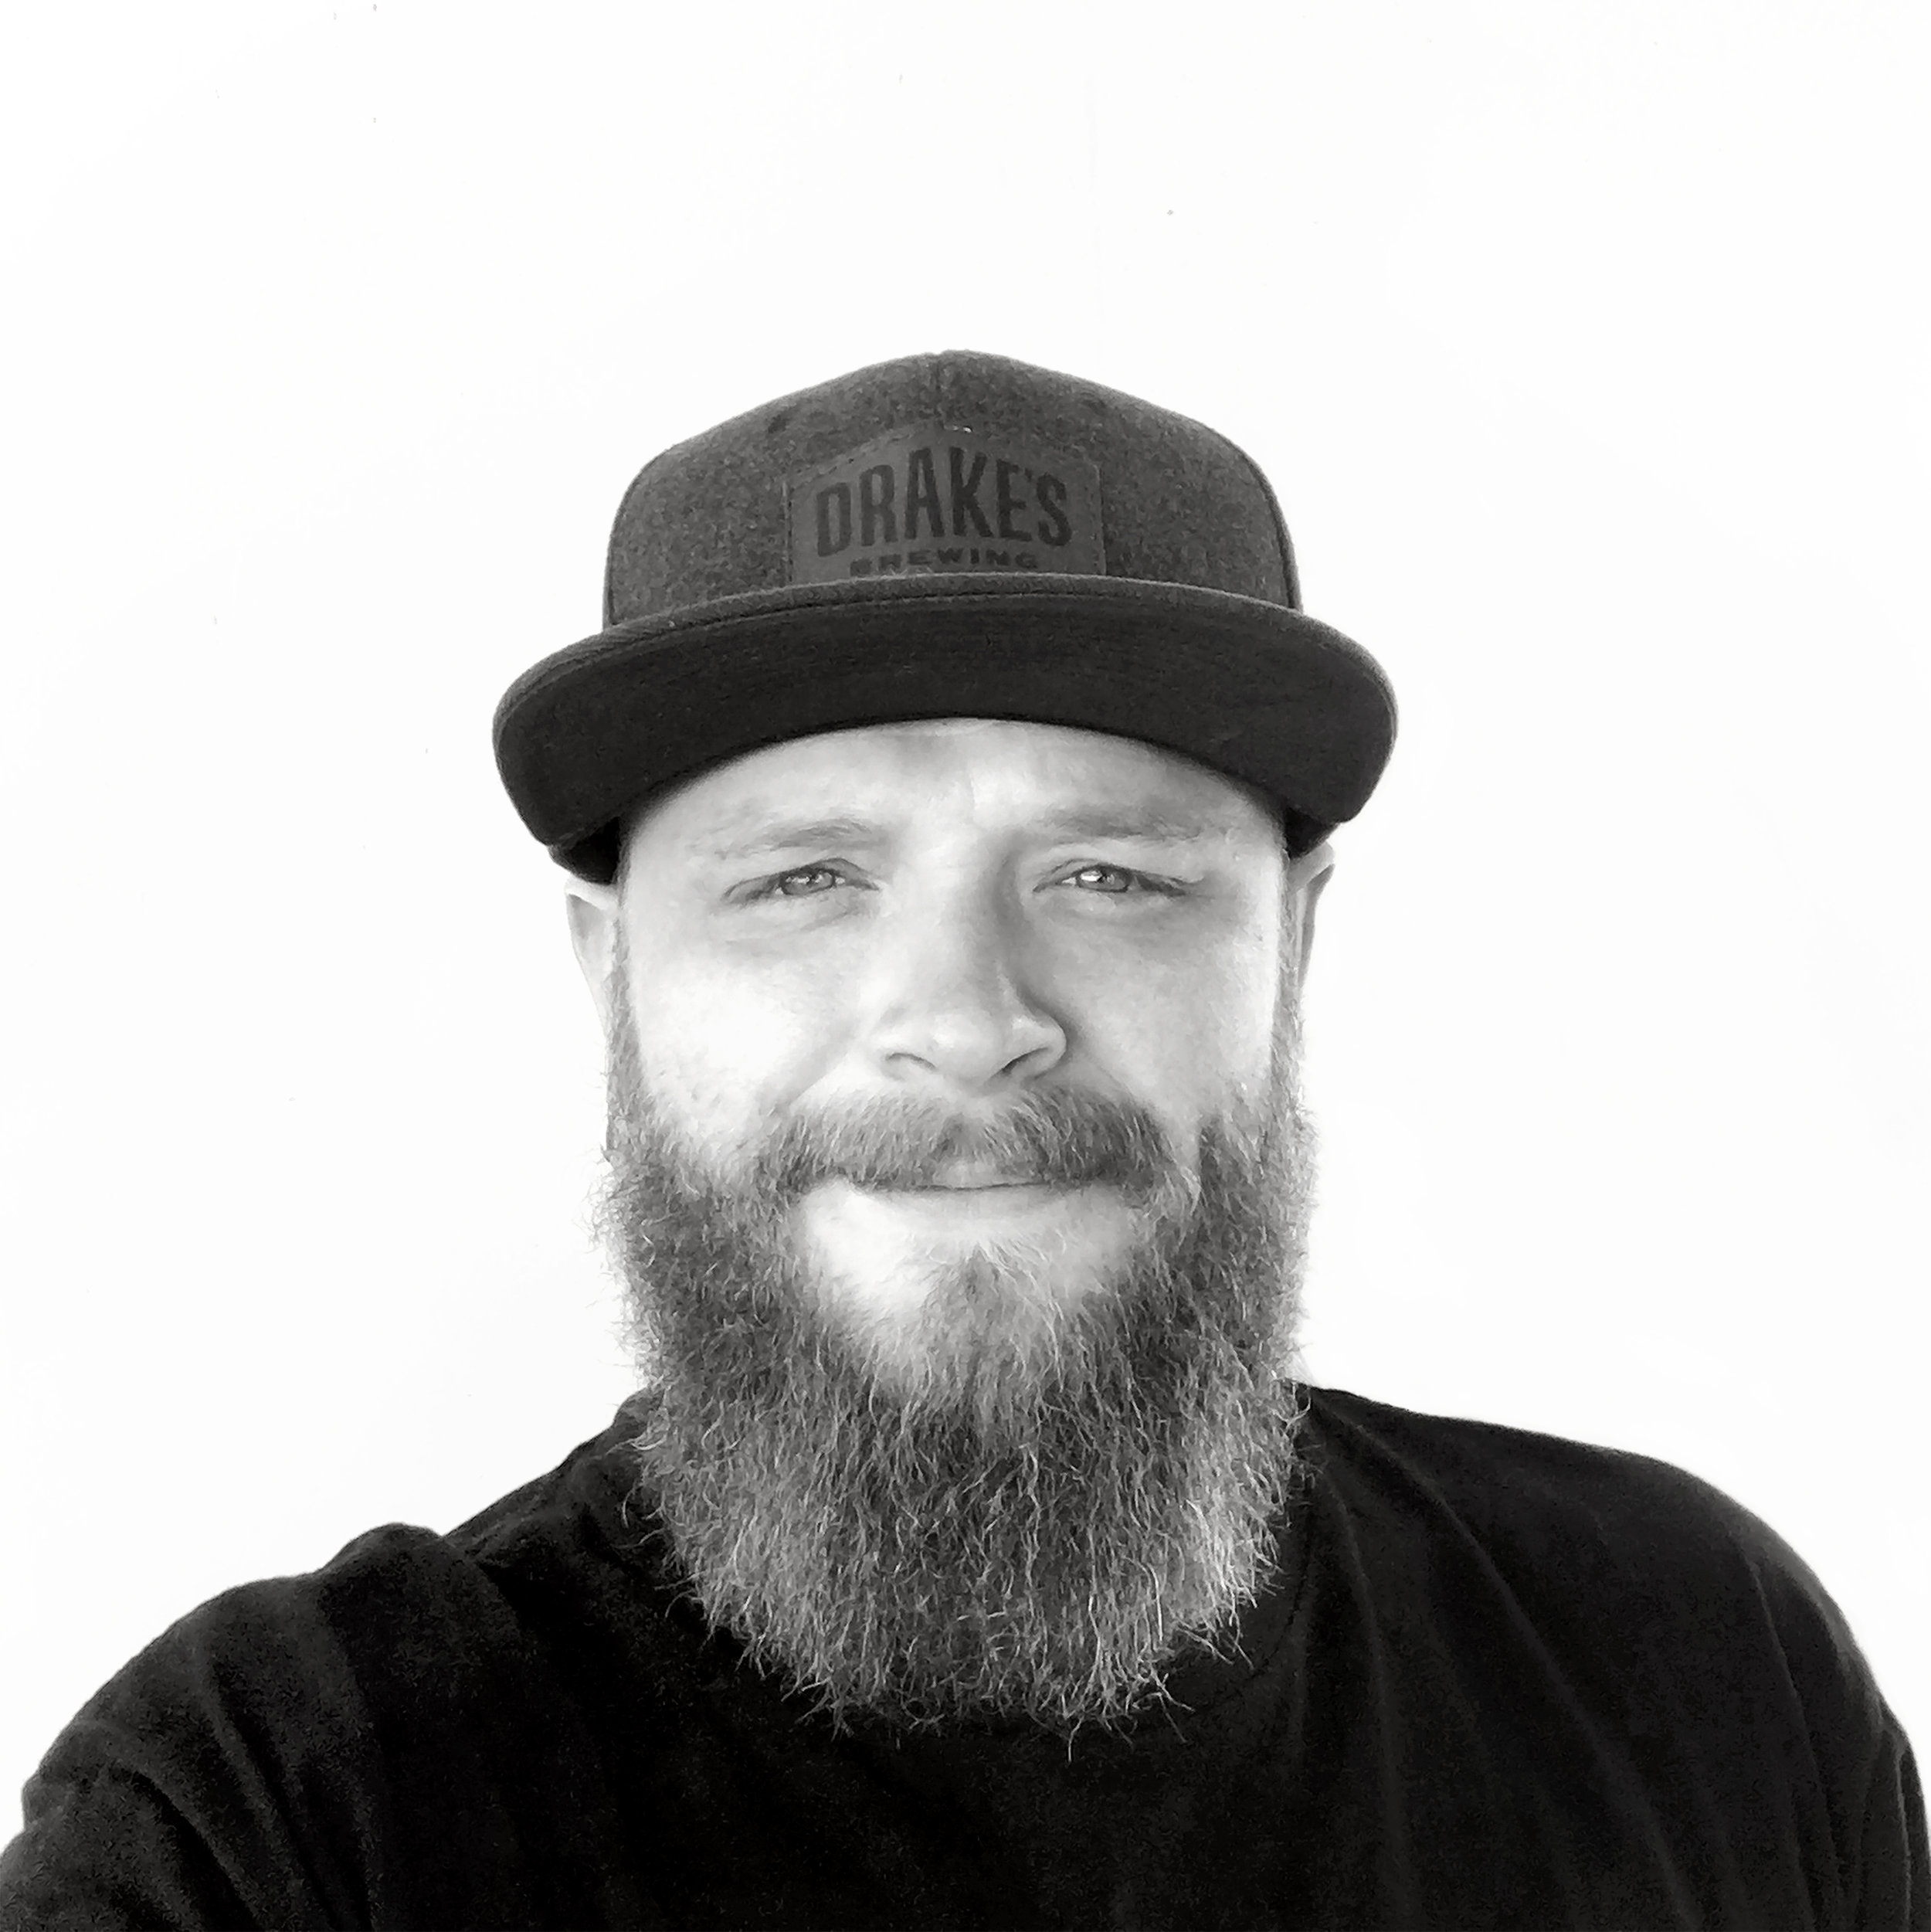 A little about me - Hello, my name is Christopher Fuzi, I am a Senior Graphic Designer and Photographer; among a few other things. I was born and raised in Buffalo, NY. I visited the Bay Area in 1999, instantly fell in love with the people, the area and the culture. I decided to make the pilgrimage in 2006 to continue with my education and to explore building a life on the left coast.10 years ago I gave the commencement speech to my graduating class and embarked on my journey as a designer; and quite the journey it's been. I've freelanced, worked with start-ups, nonprofits, municipalities, restaurants, hotels, and for a marketing and advertising agency.I'm currently on the hunt for the next challenge of my career. Leveraging a decade in the industry, I'm looking for a senior level role to help lead designers and companies in solving a variety of creative problems and collectively come up with attractive solutions.Drop me a line and let's create something, together.